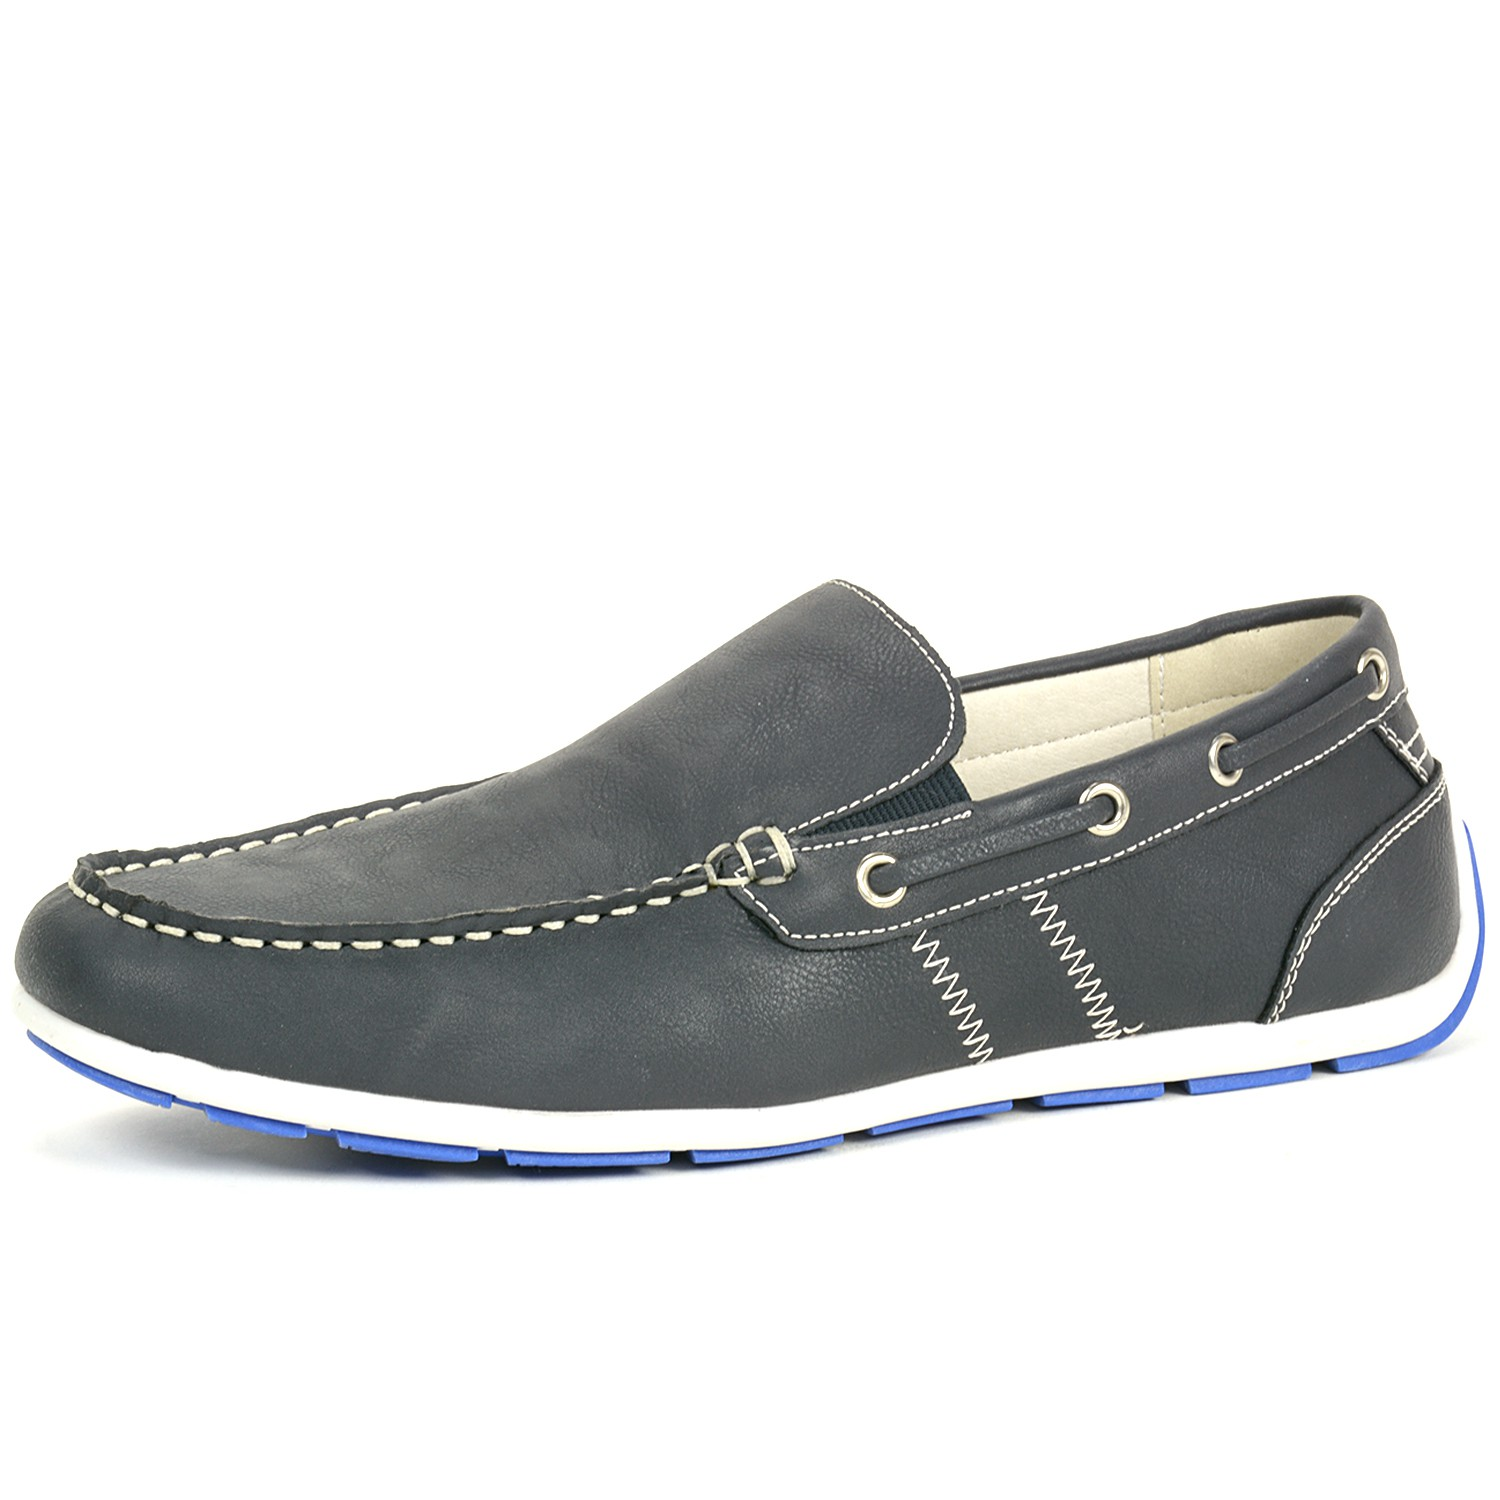 Mens Casual Shoes Nice 2493287 Gbx Slip On